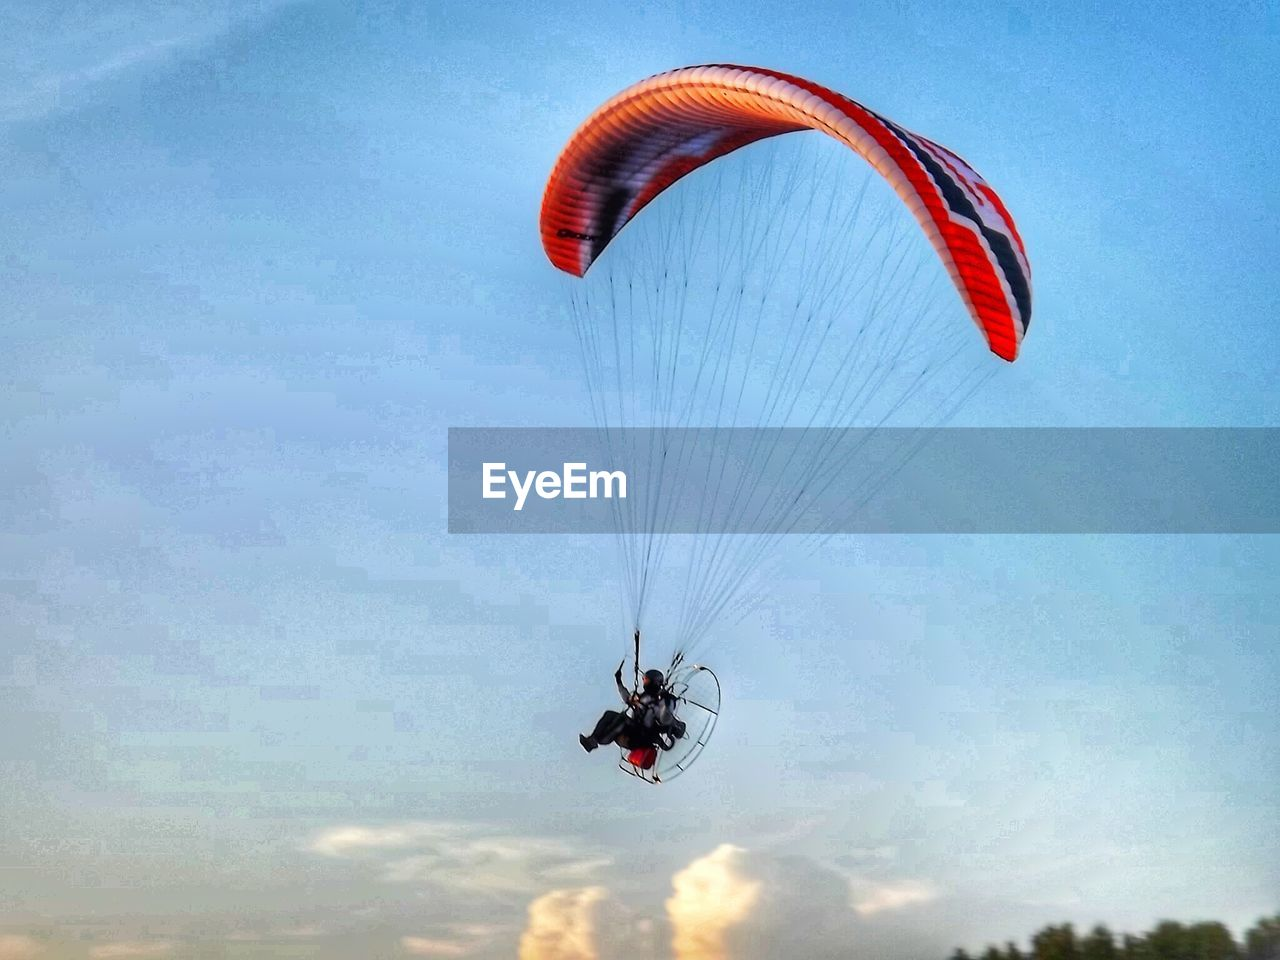 Low angle view of man flying powered parachute against sky